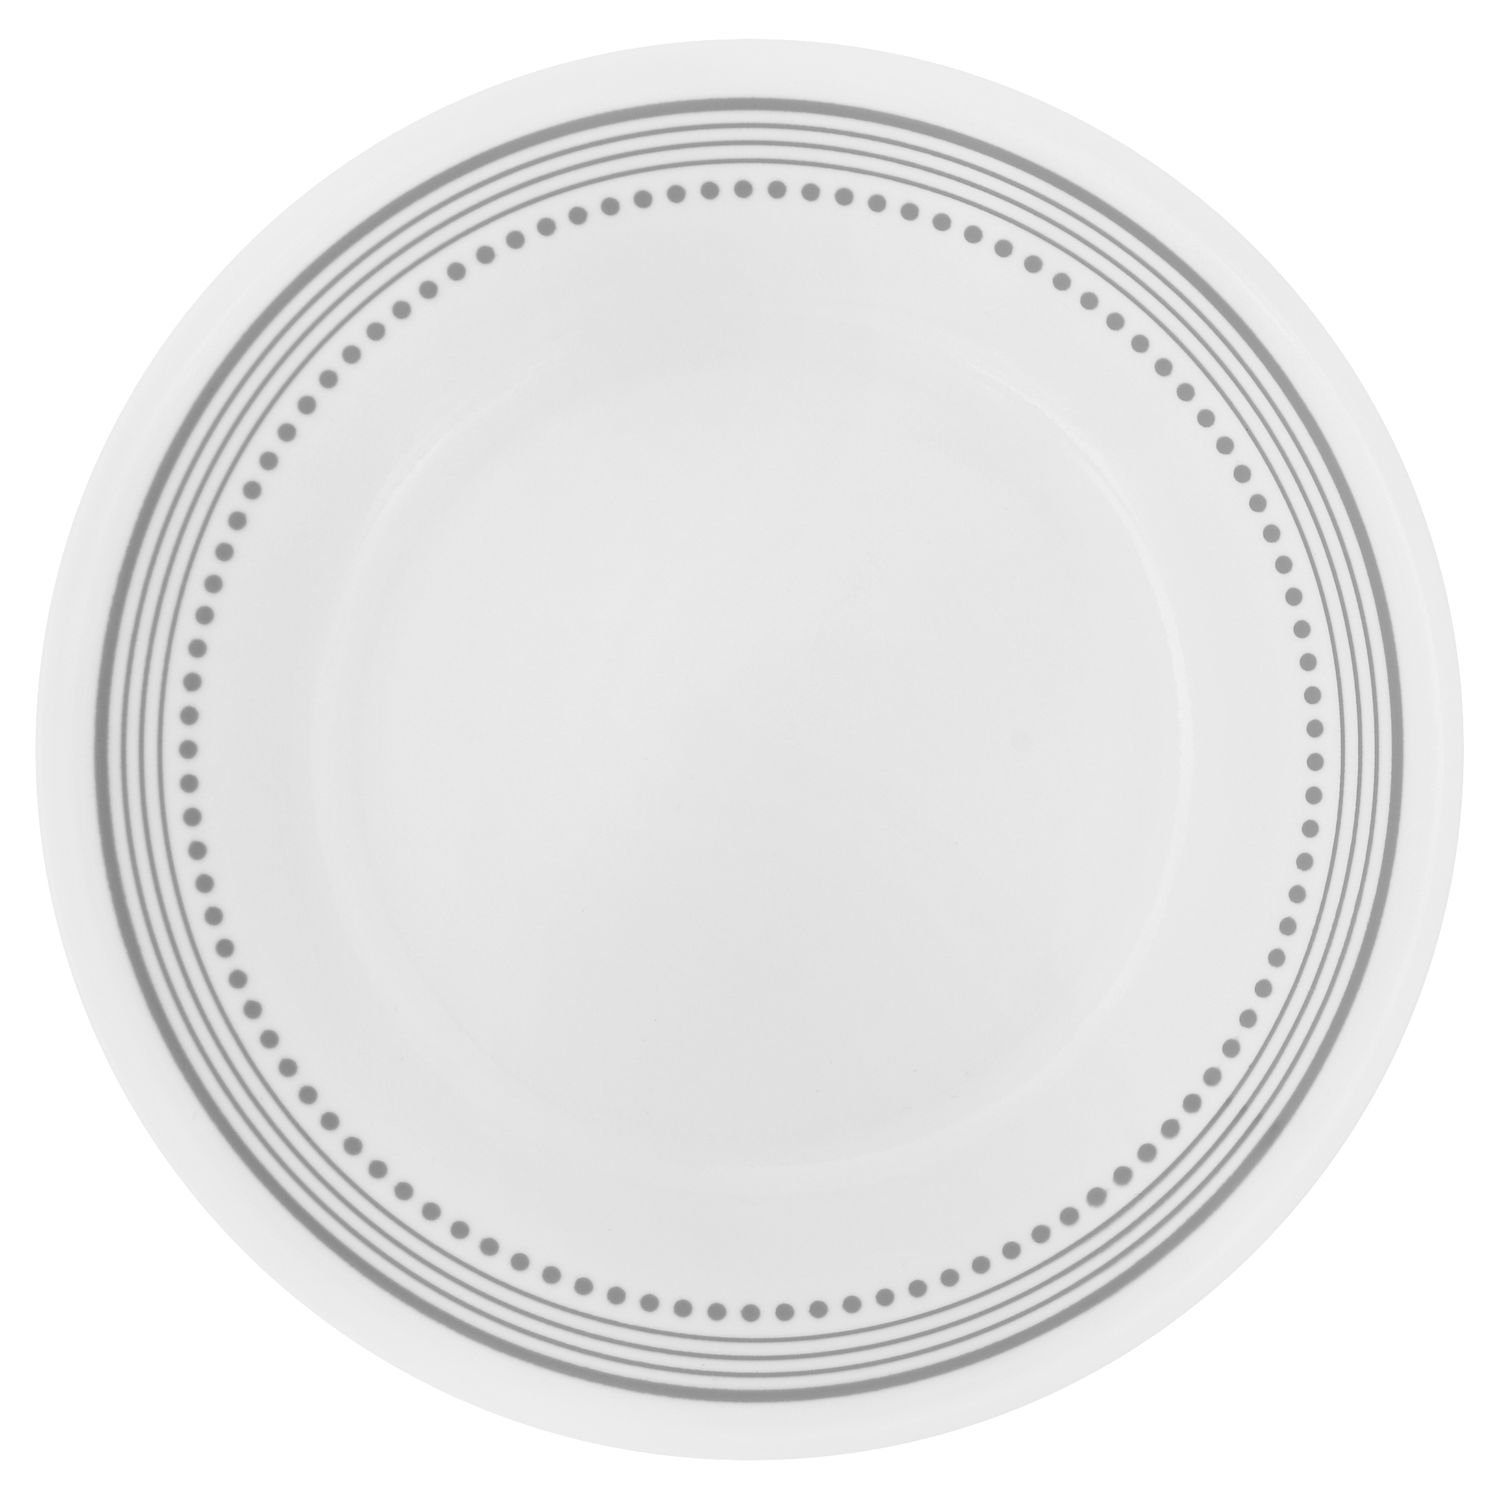 Corelle Livingware Mystic Gray 6.75'' Bread & Butter Plate (Set of 4)